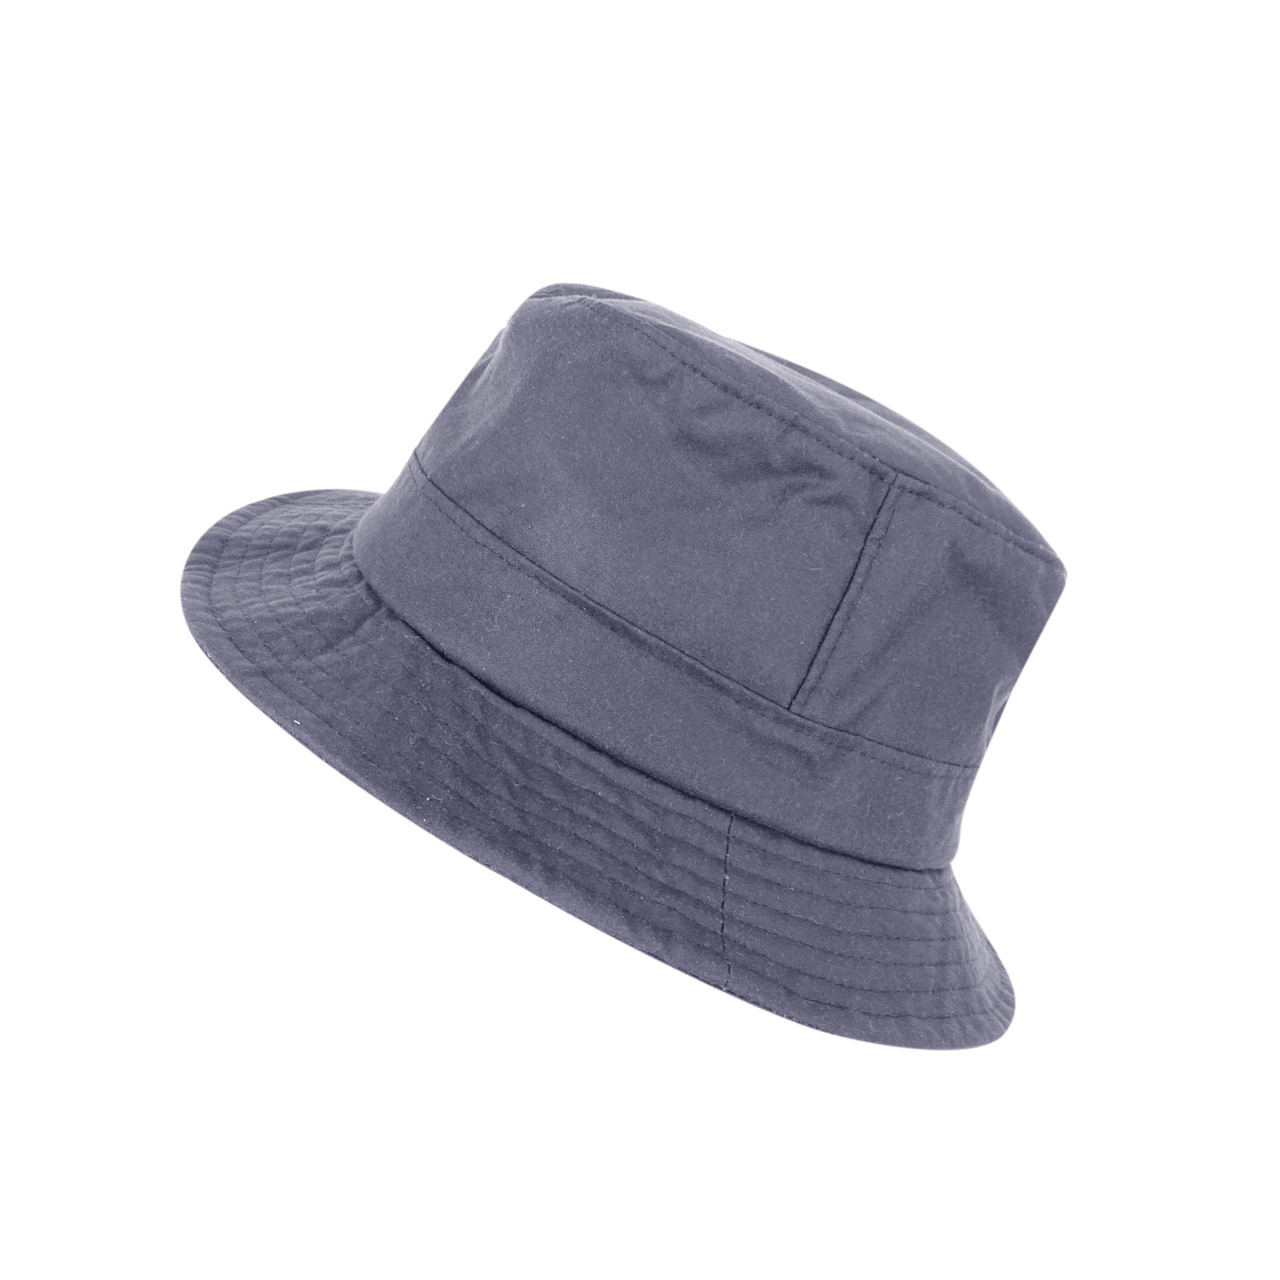 Olive Waxed Fleece Lined Cap With Ear Warmer Navy Brown